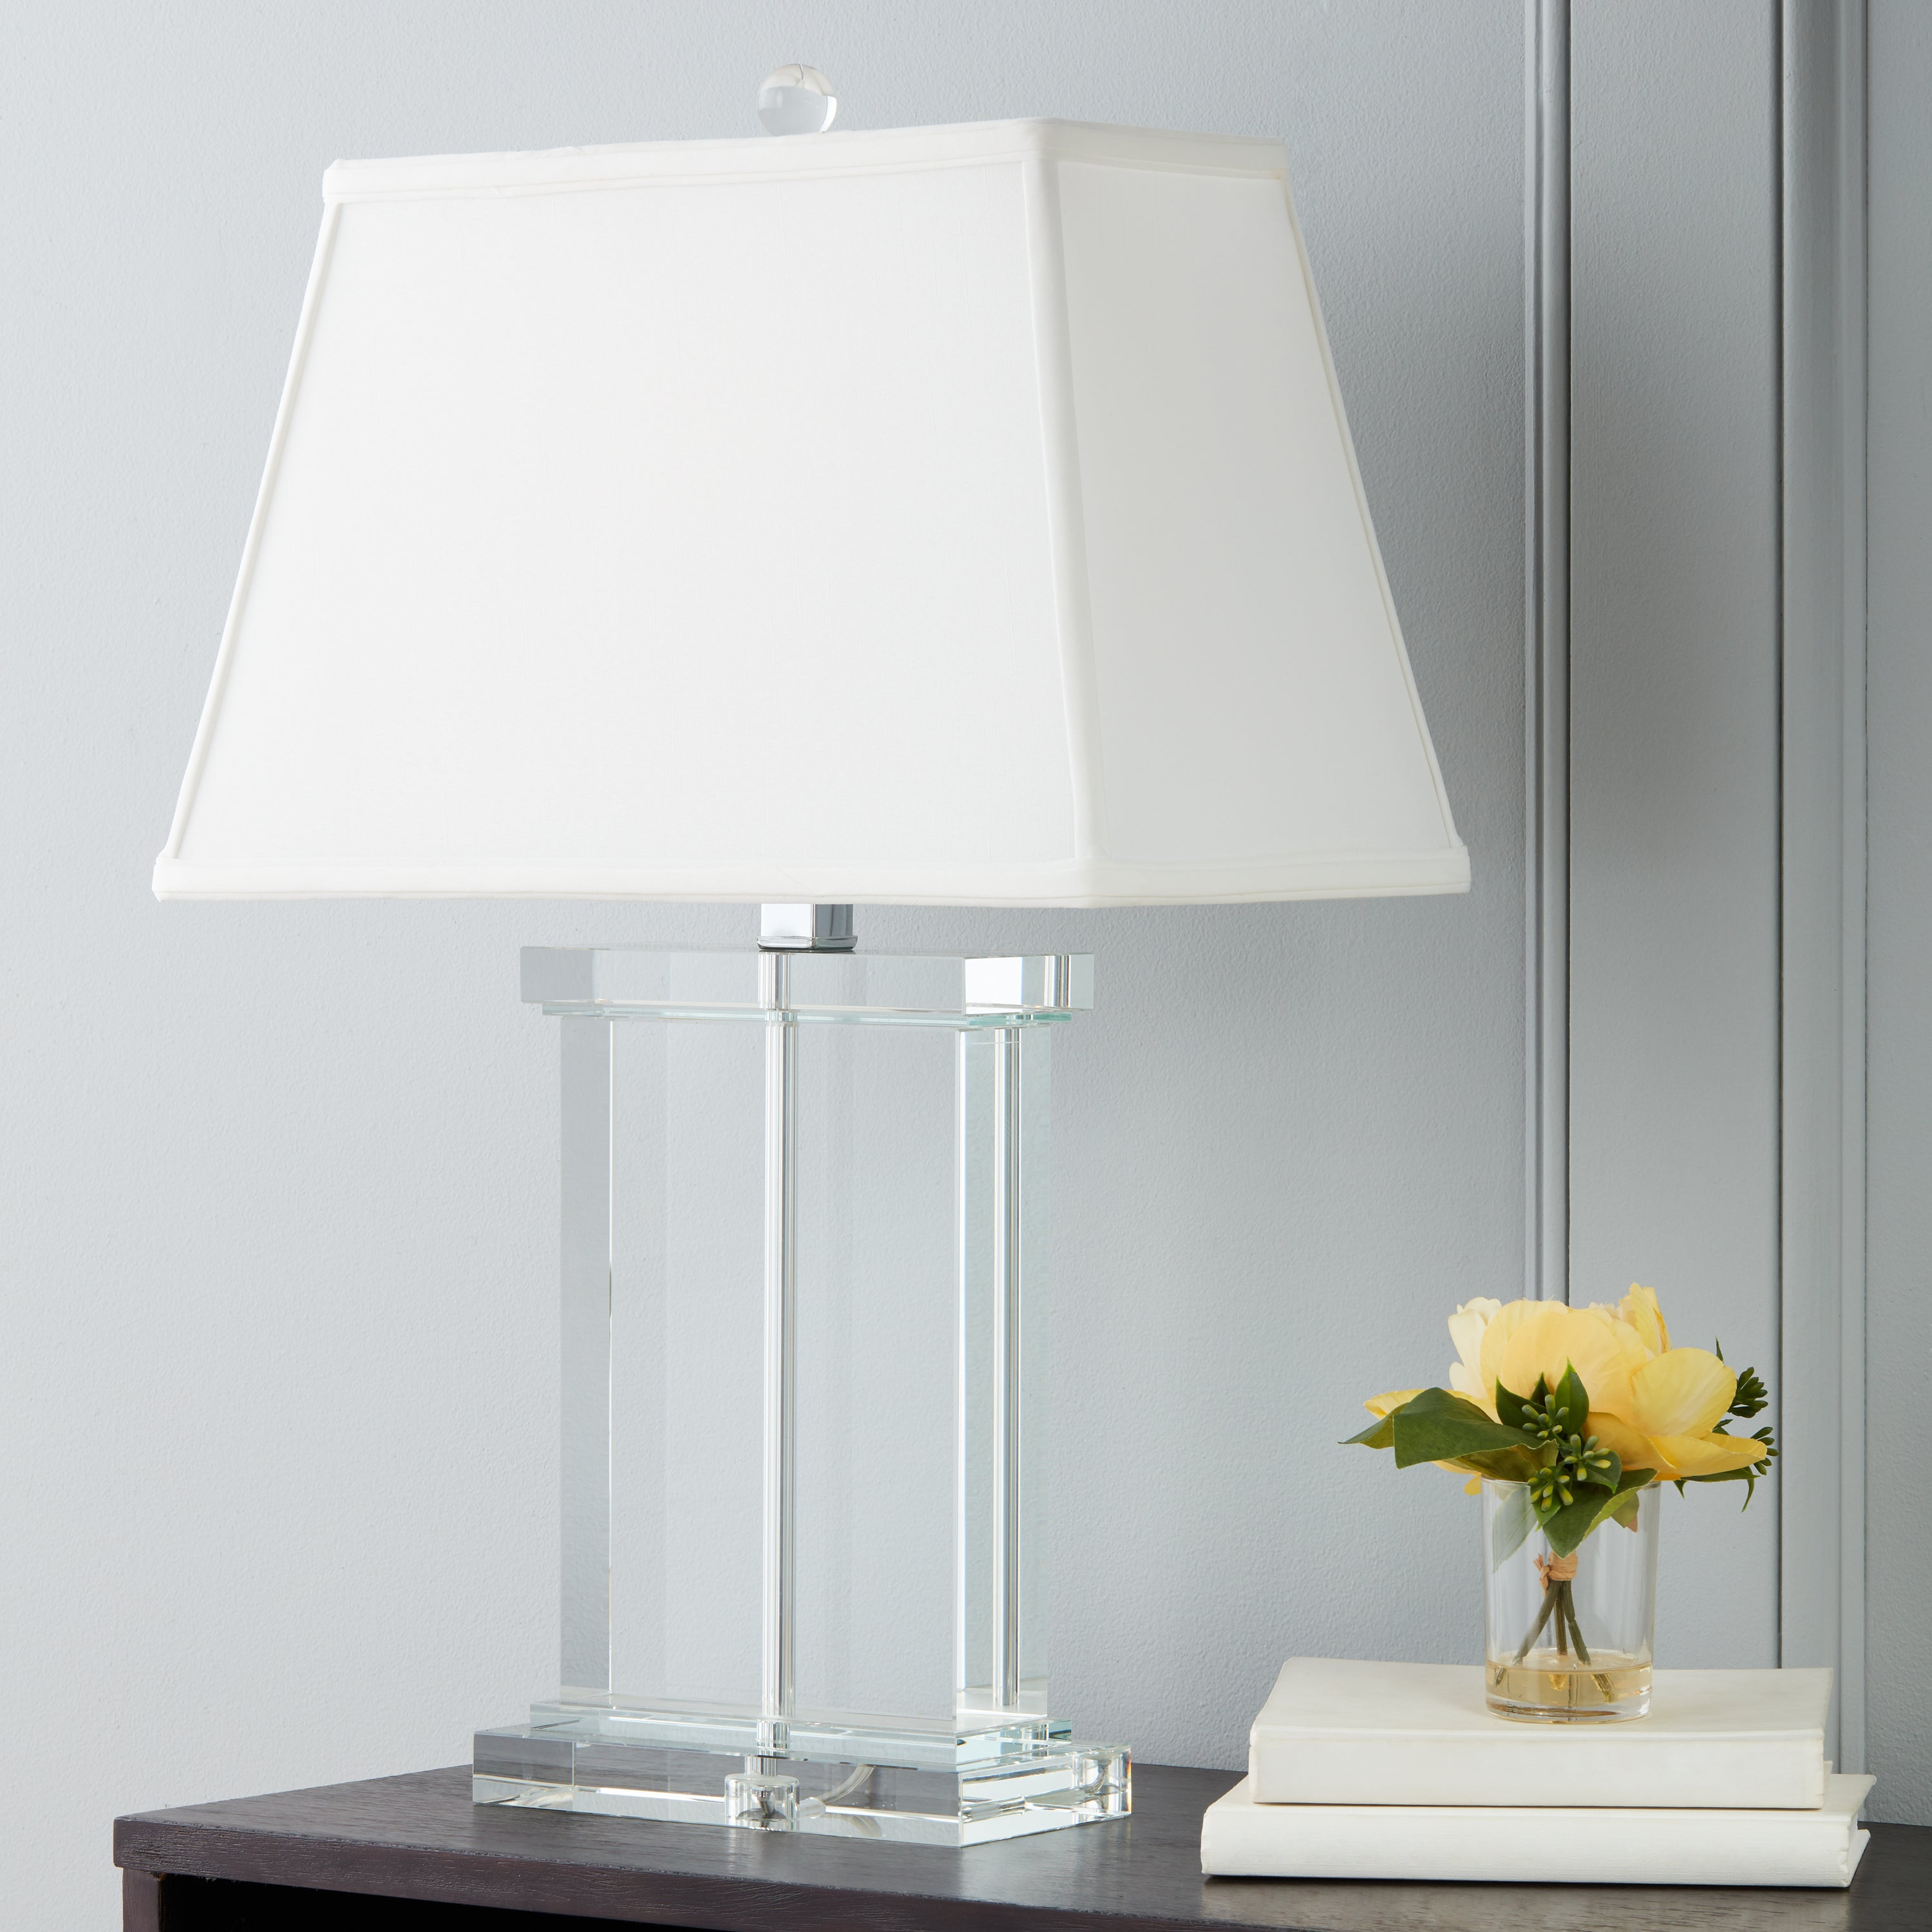 Shop crystal rectangle column table lamp free shipping today shop crystal rectangle column table lamp free shipping today overstock 3153012 aloadofball Images